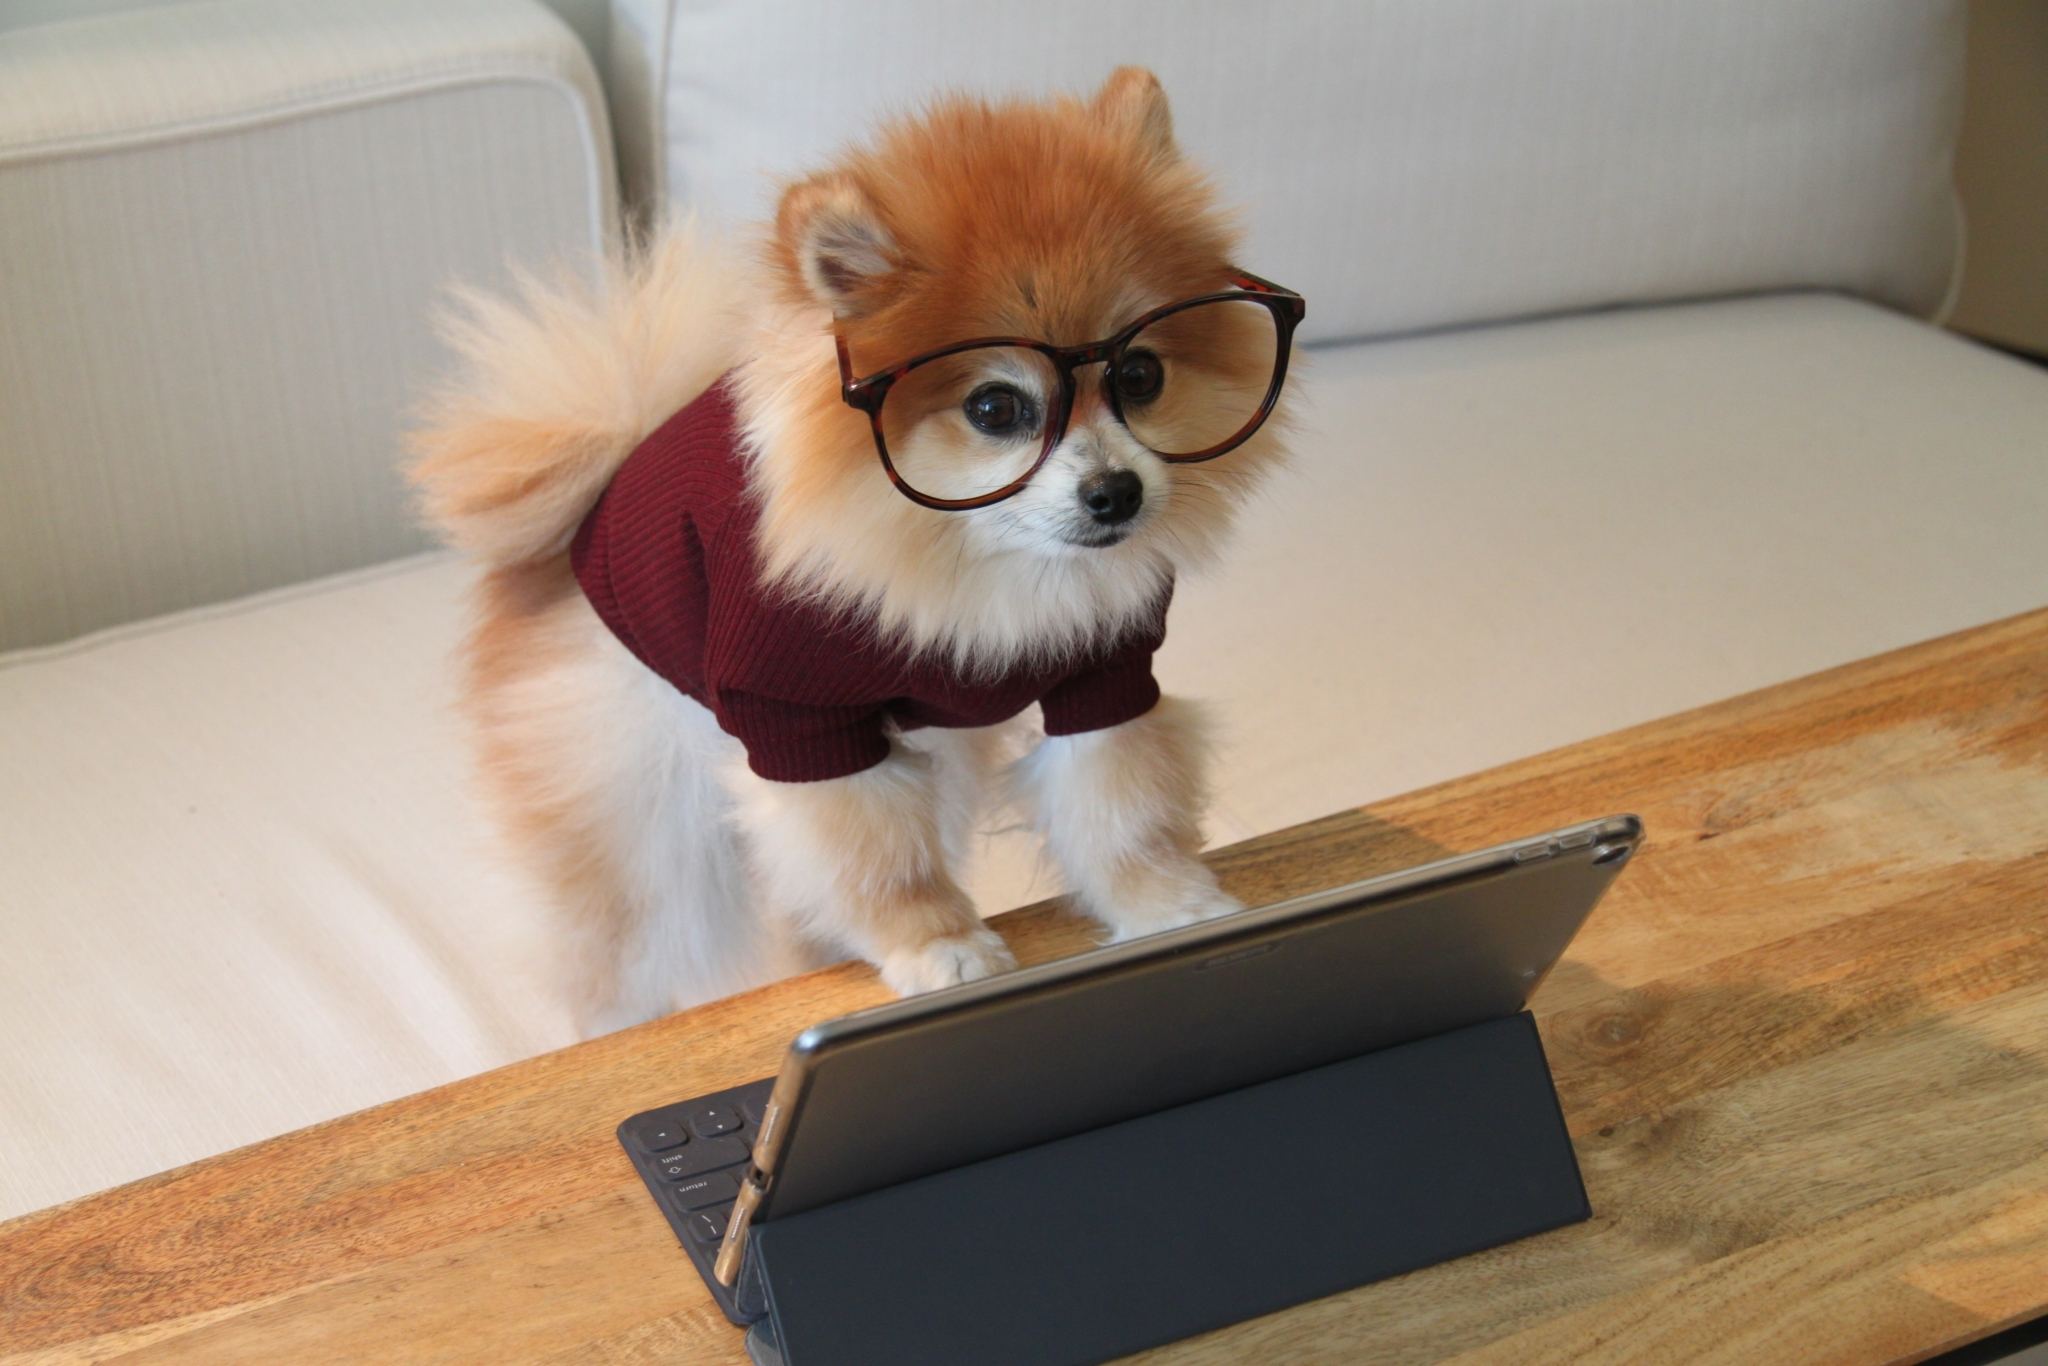 Dog browsing the web on tablet with glasses on